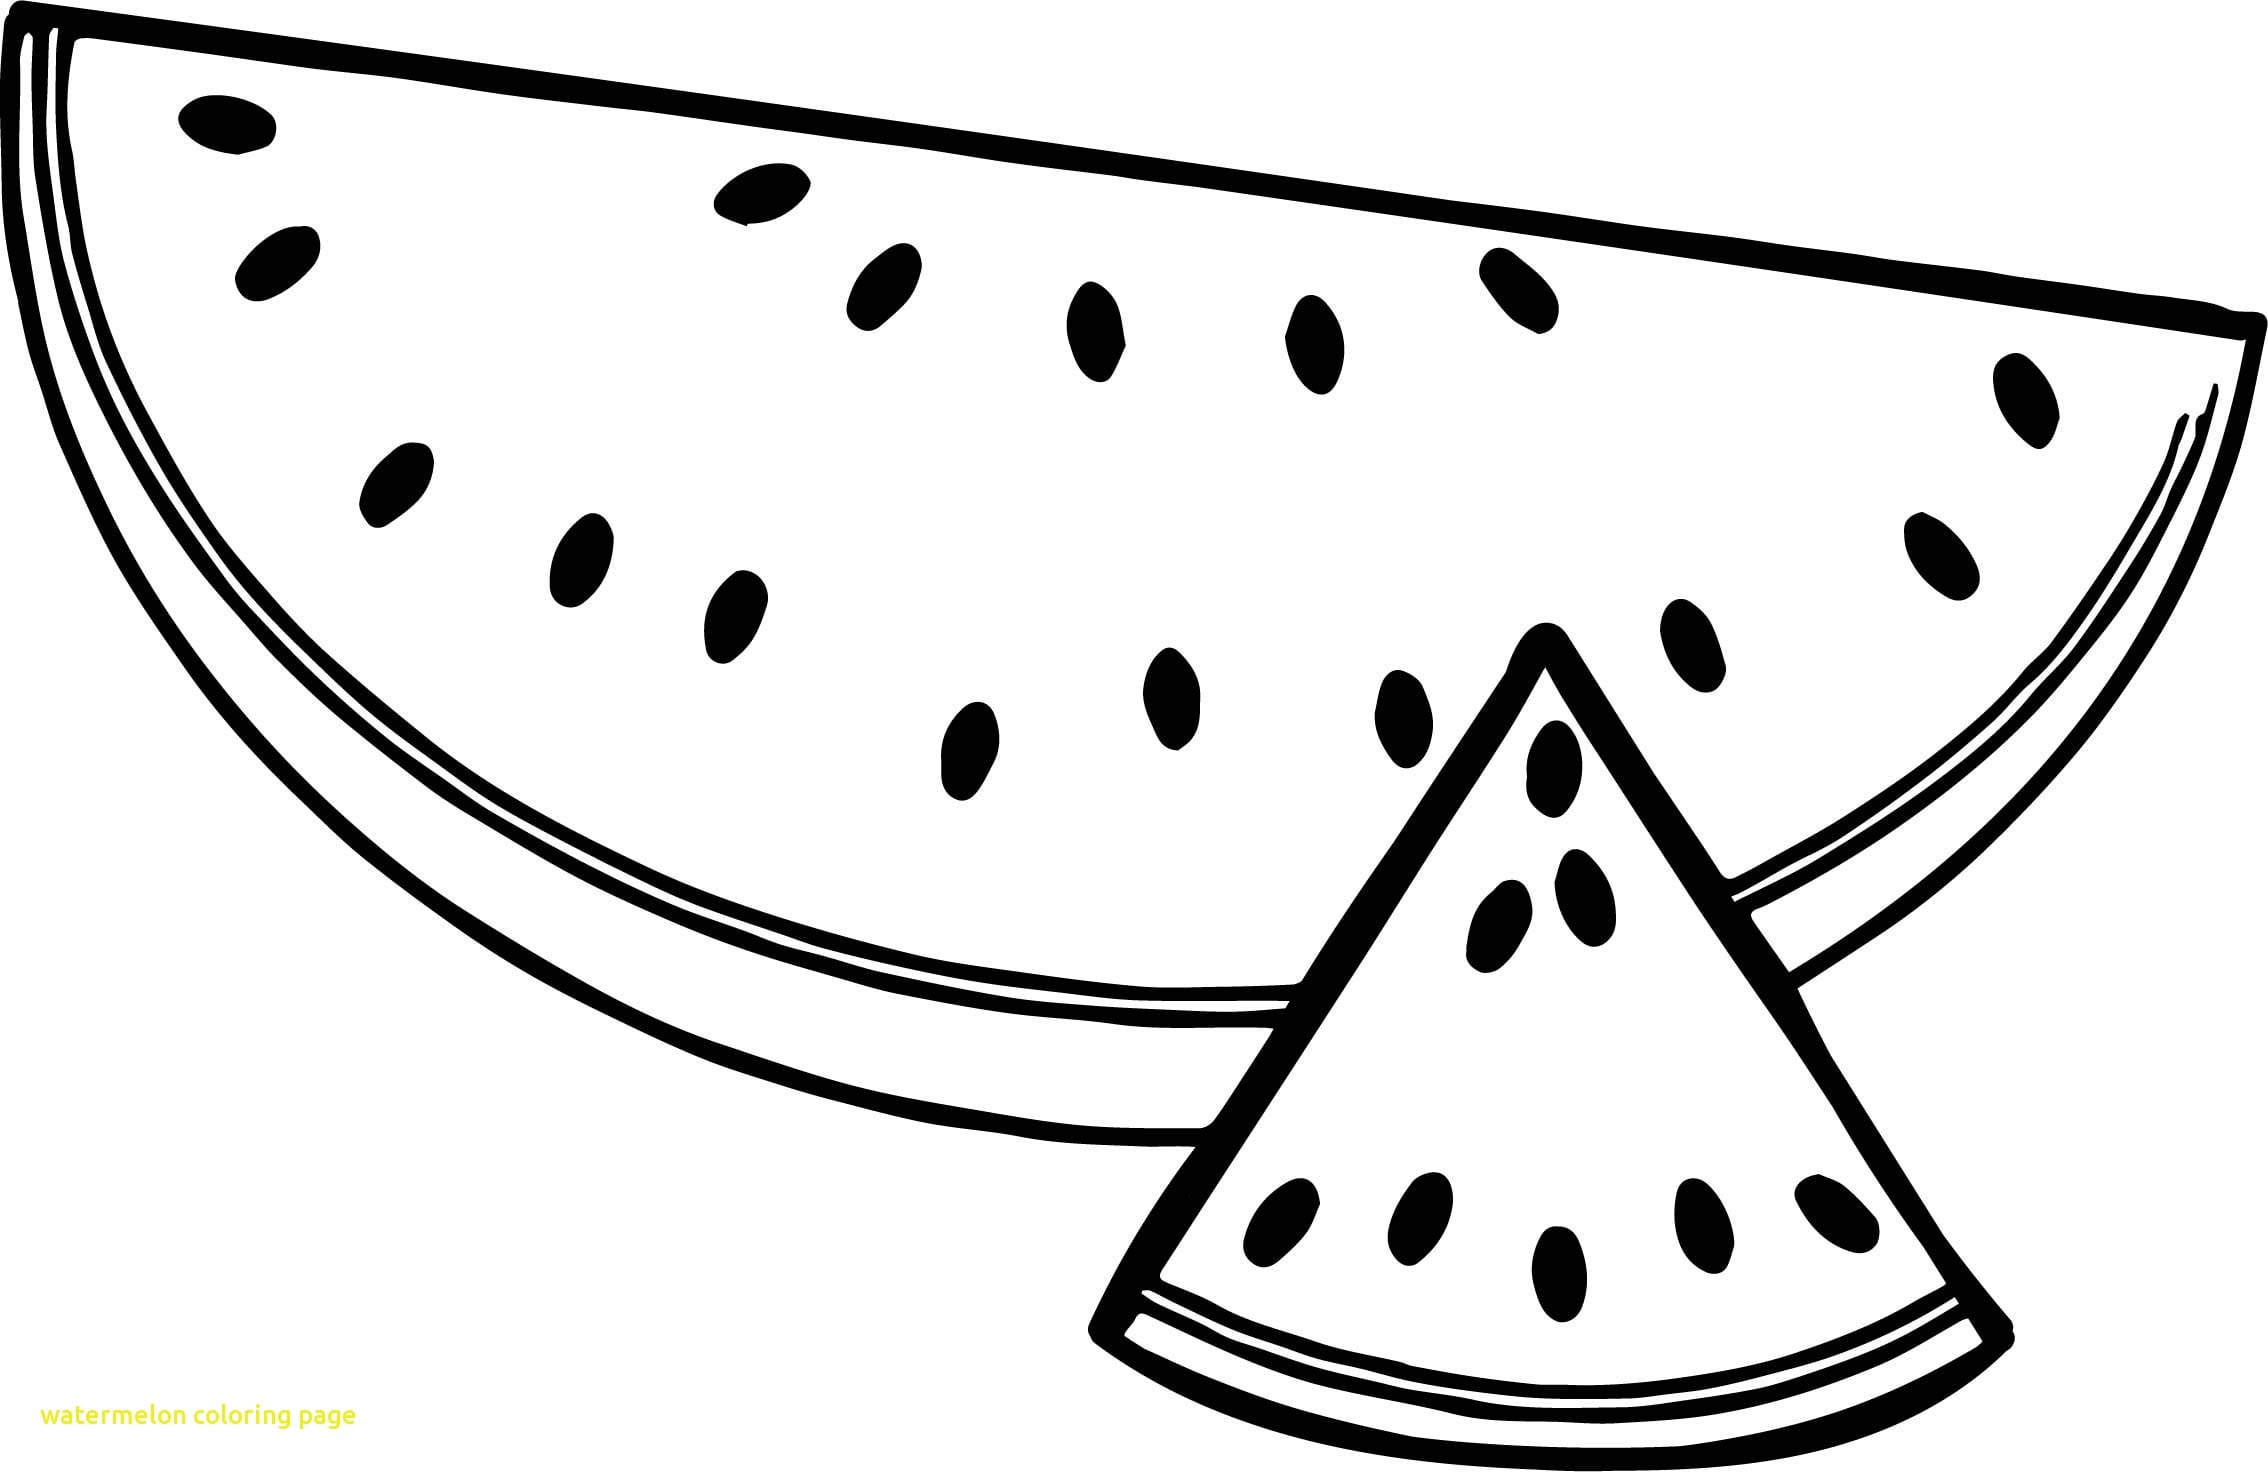 Watermelon Coloring Page Free Printable Pages And